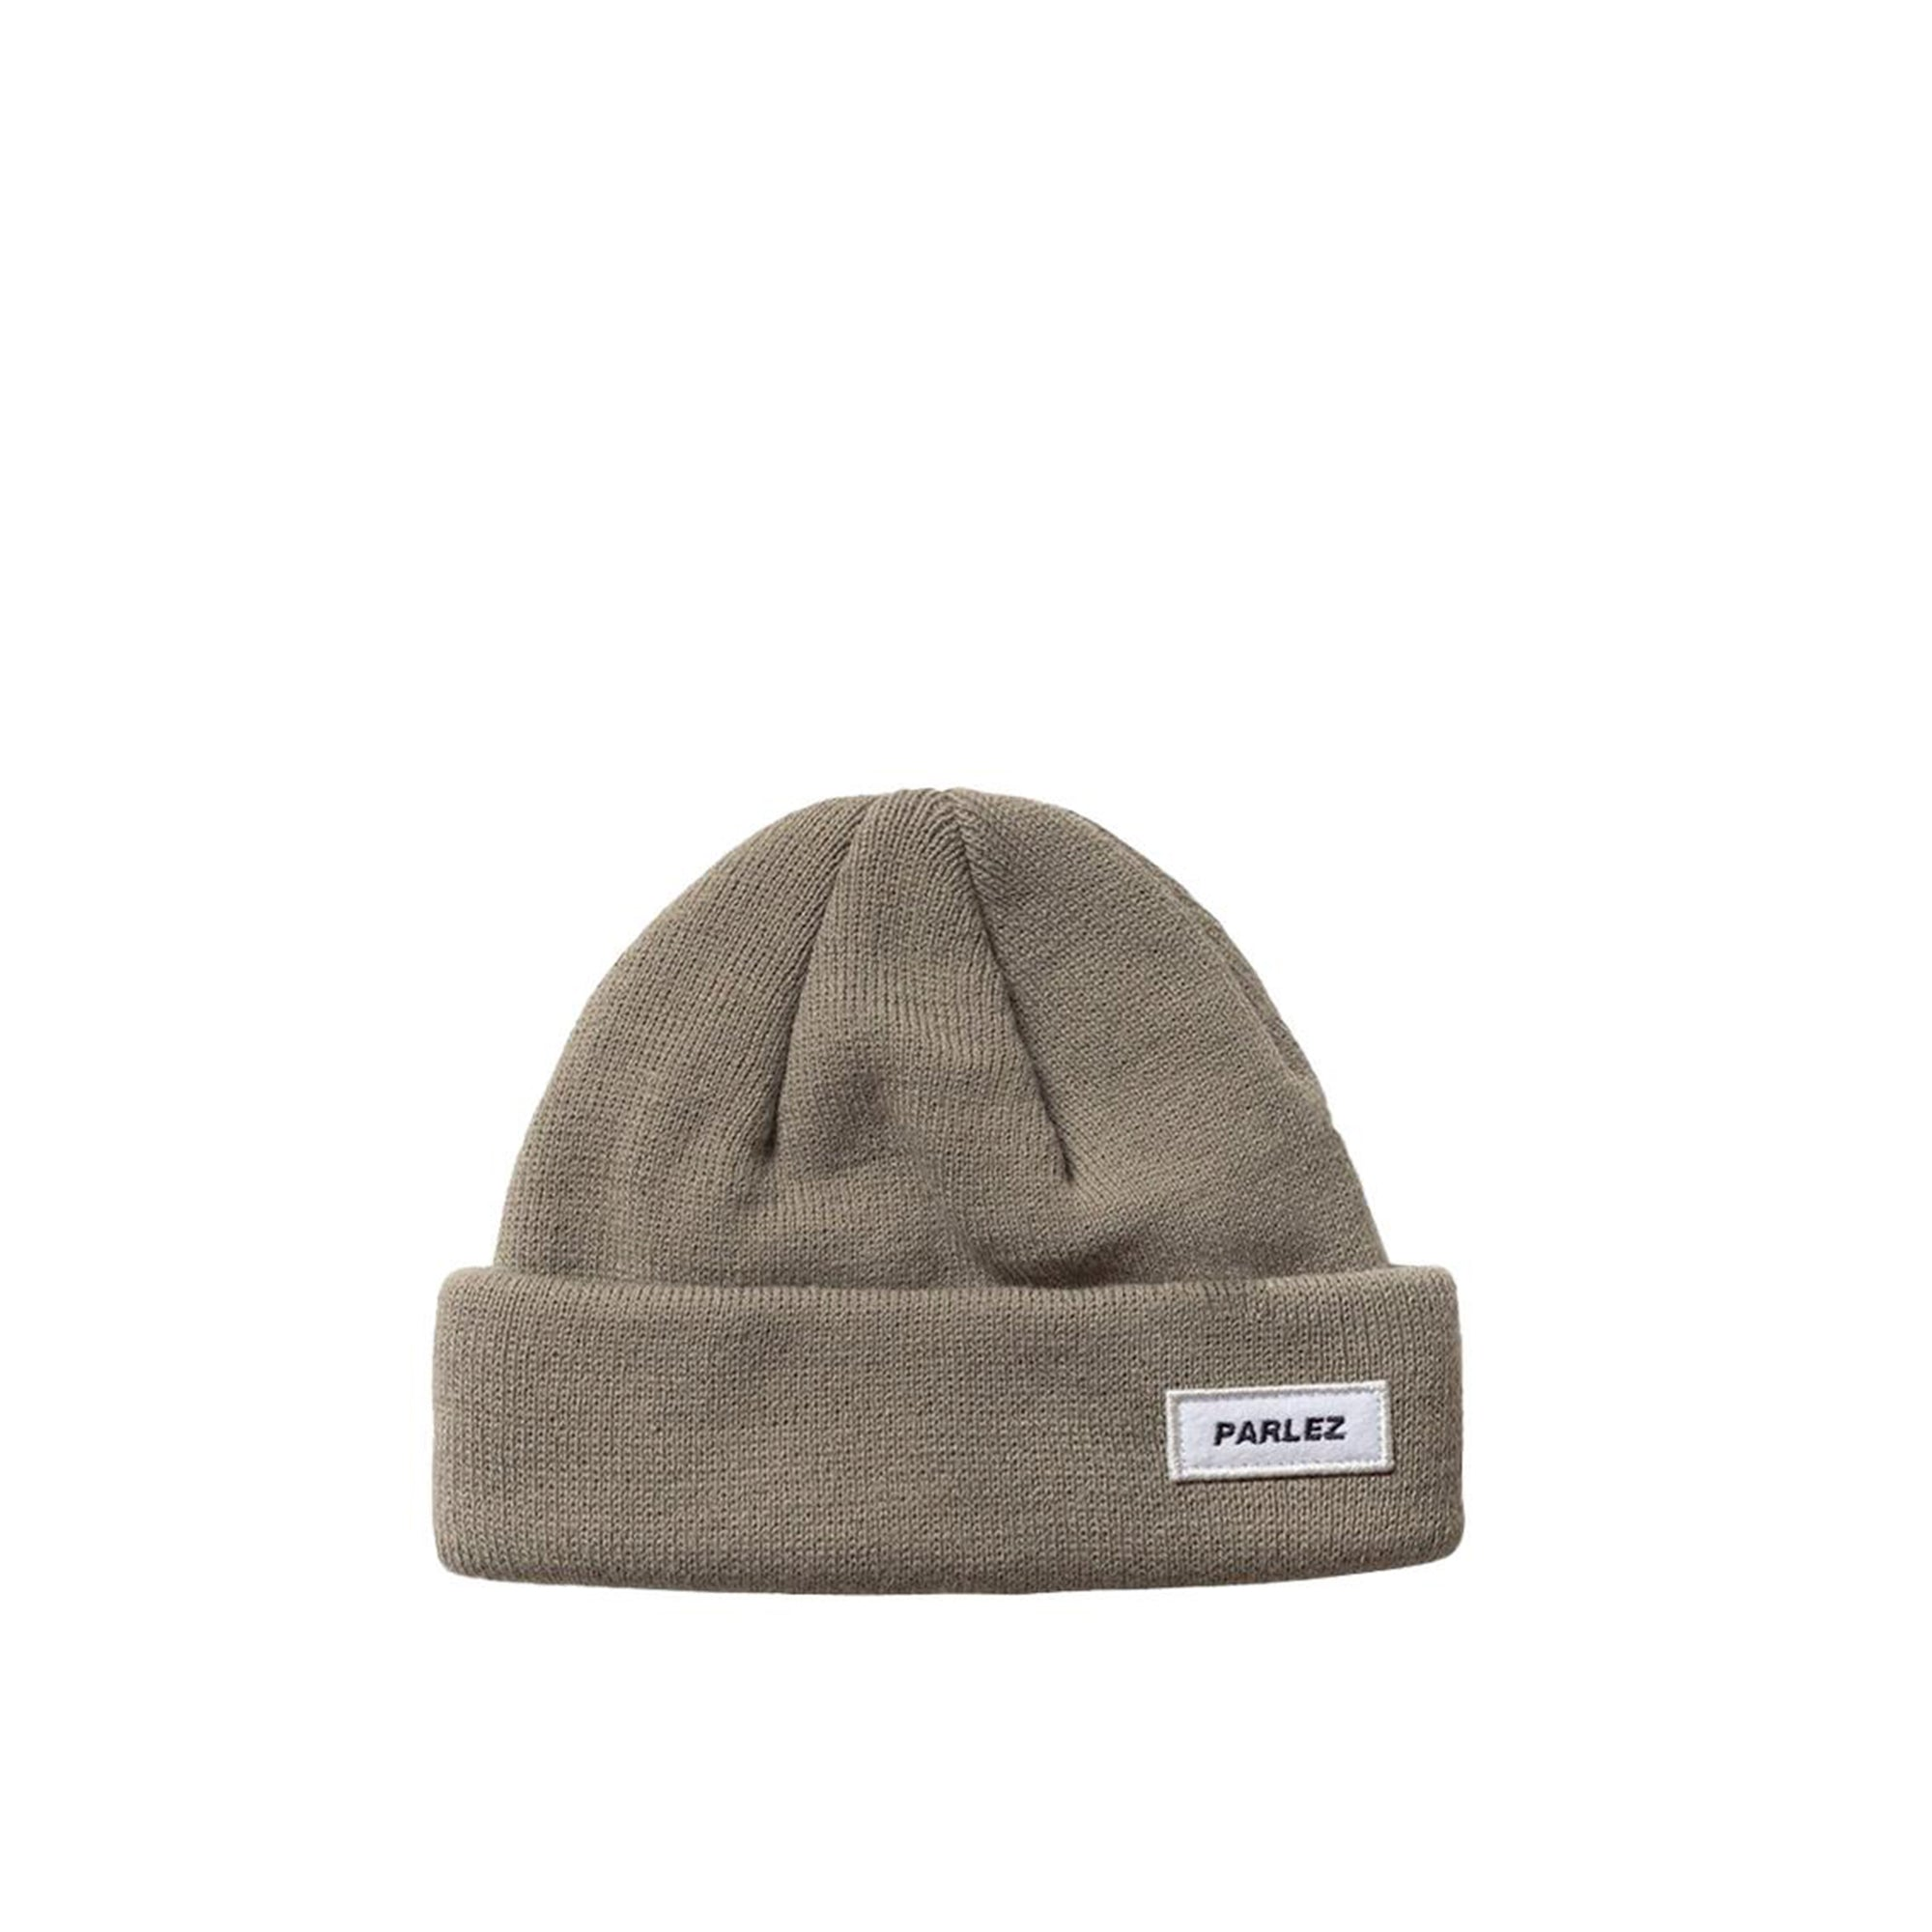 Parlez Charlton Beanie: Khaki - The Union Project